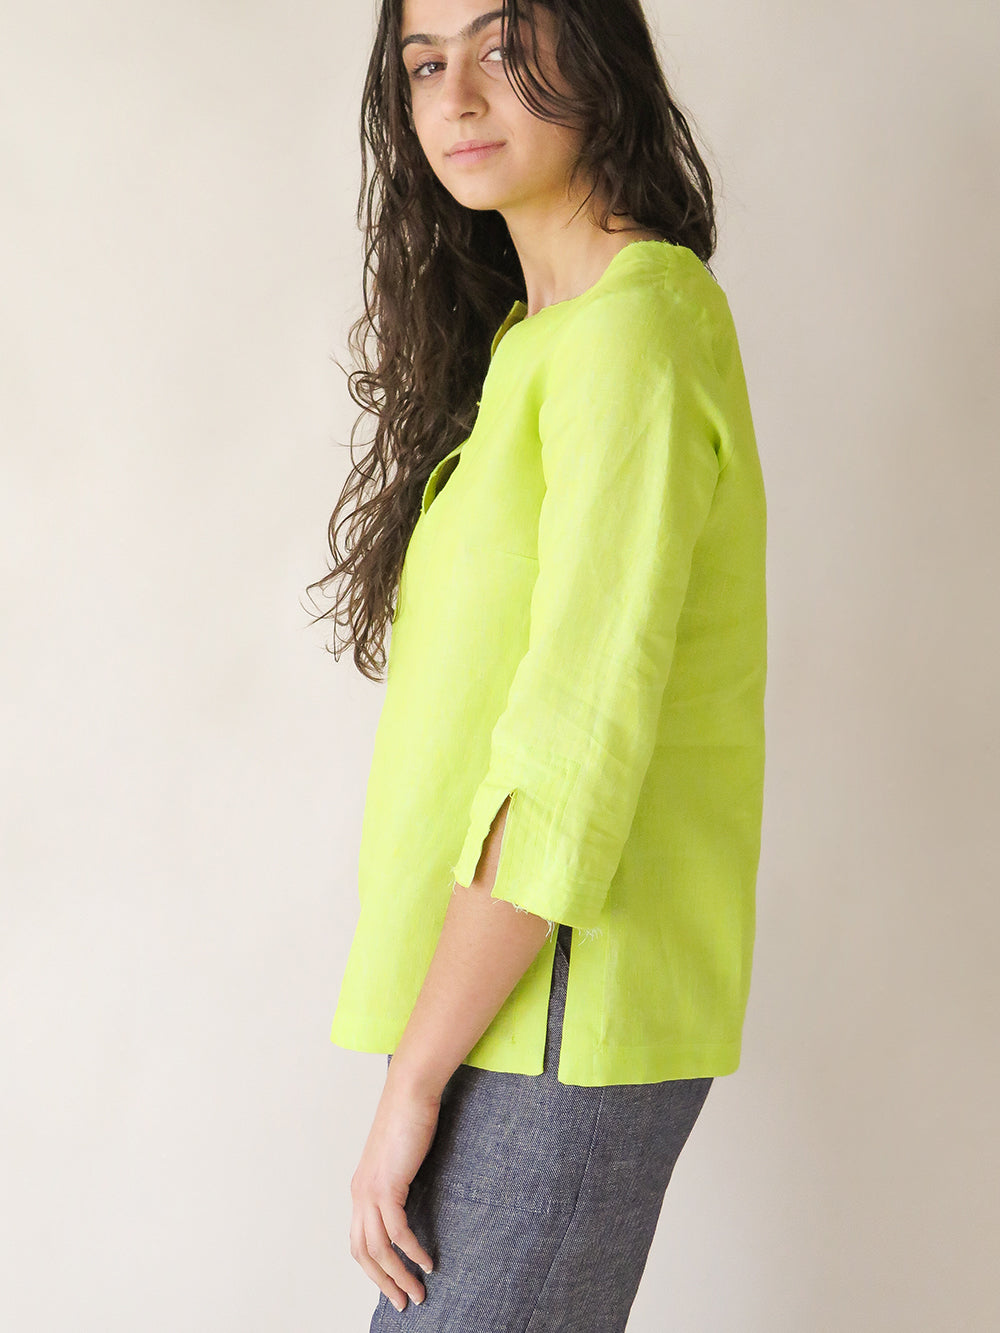 edo top in fluo